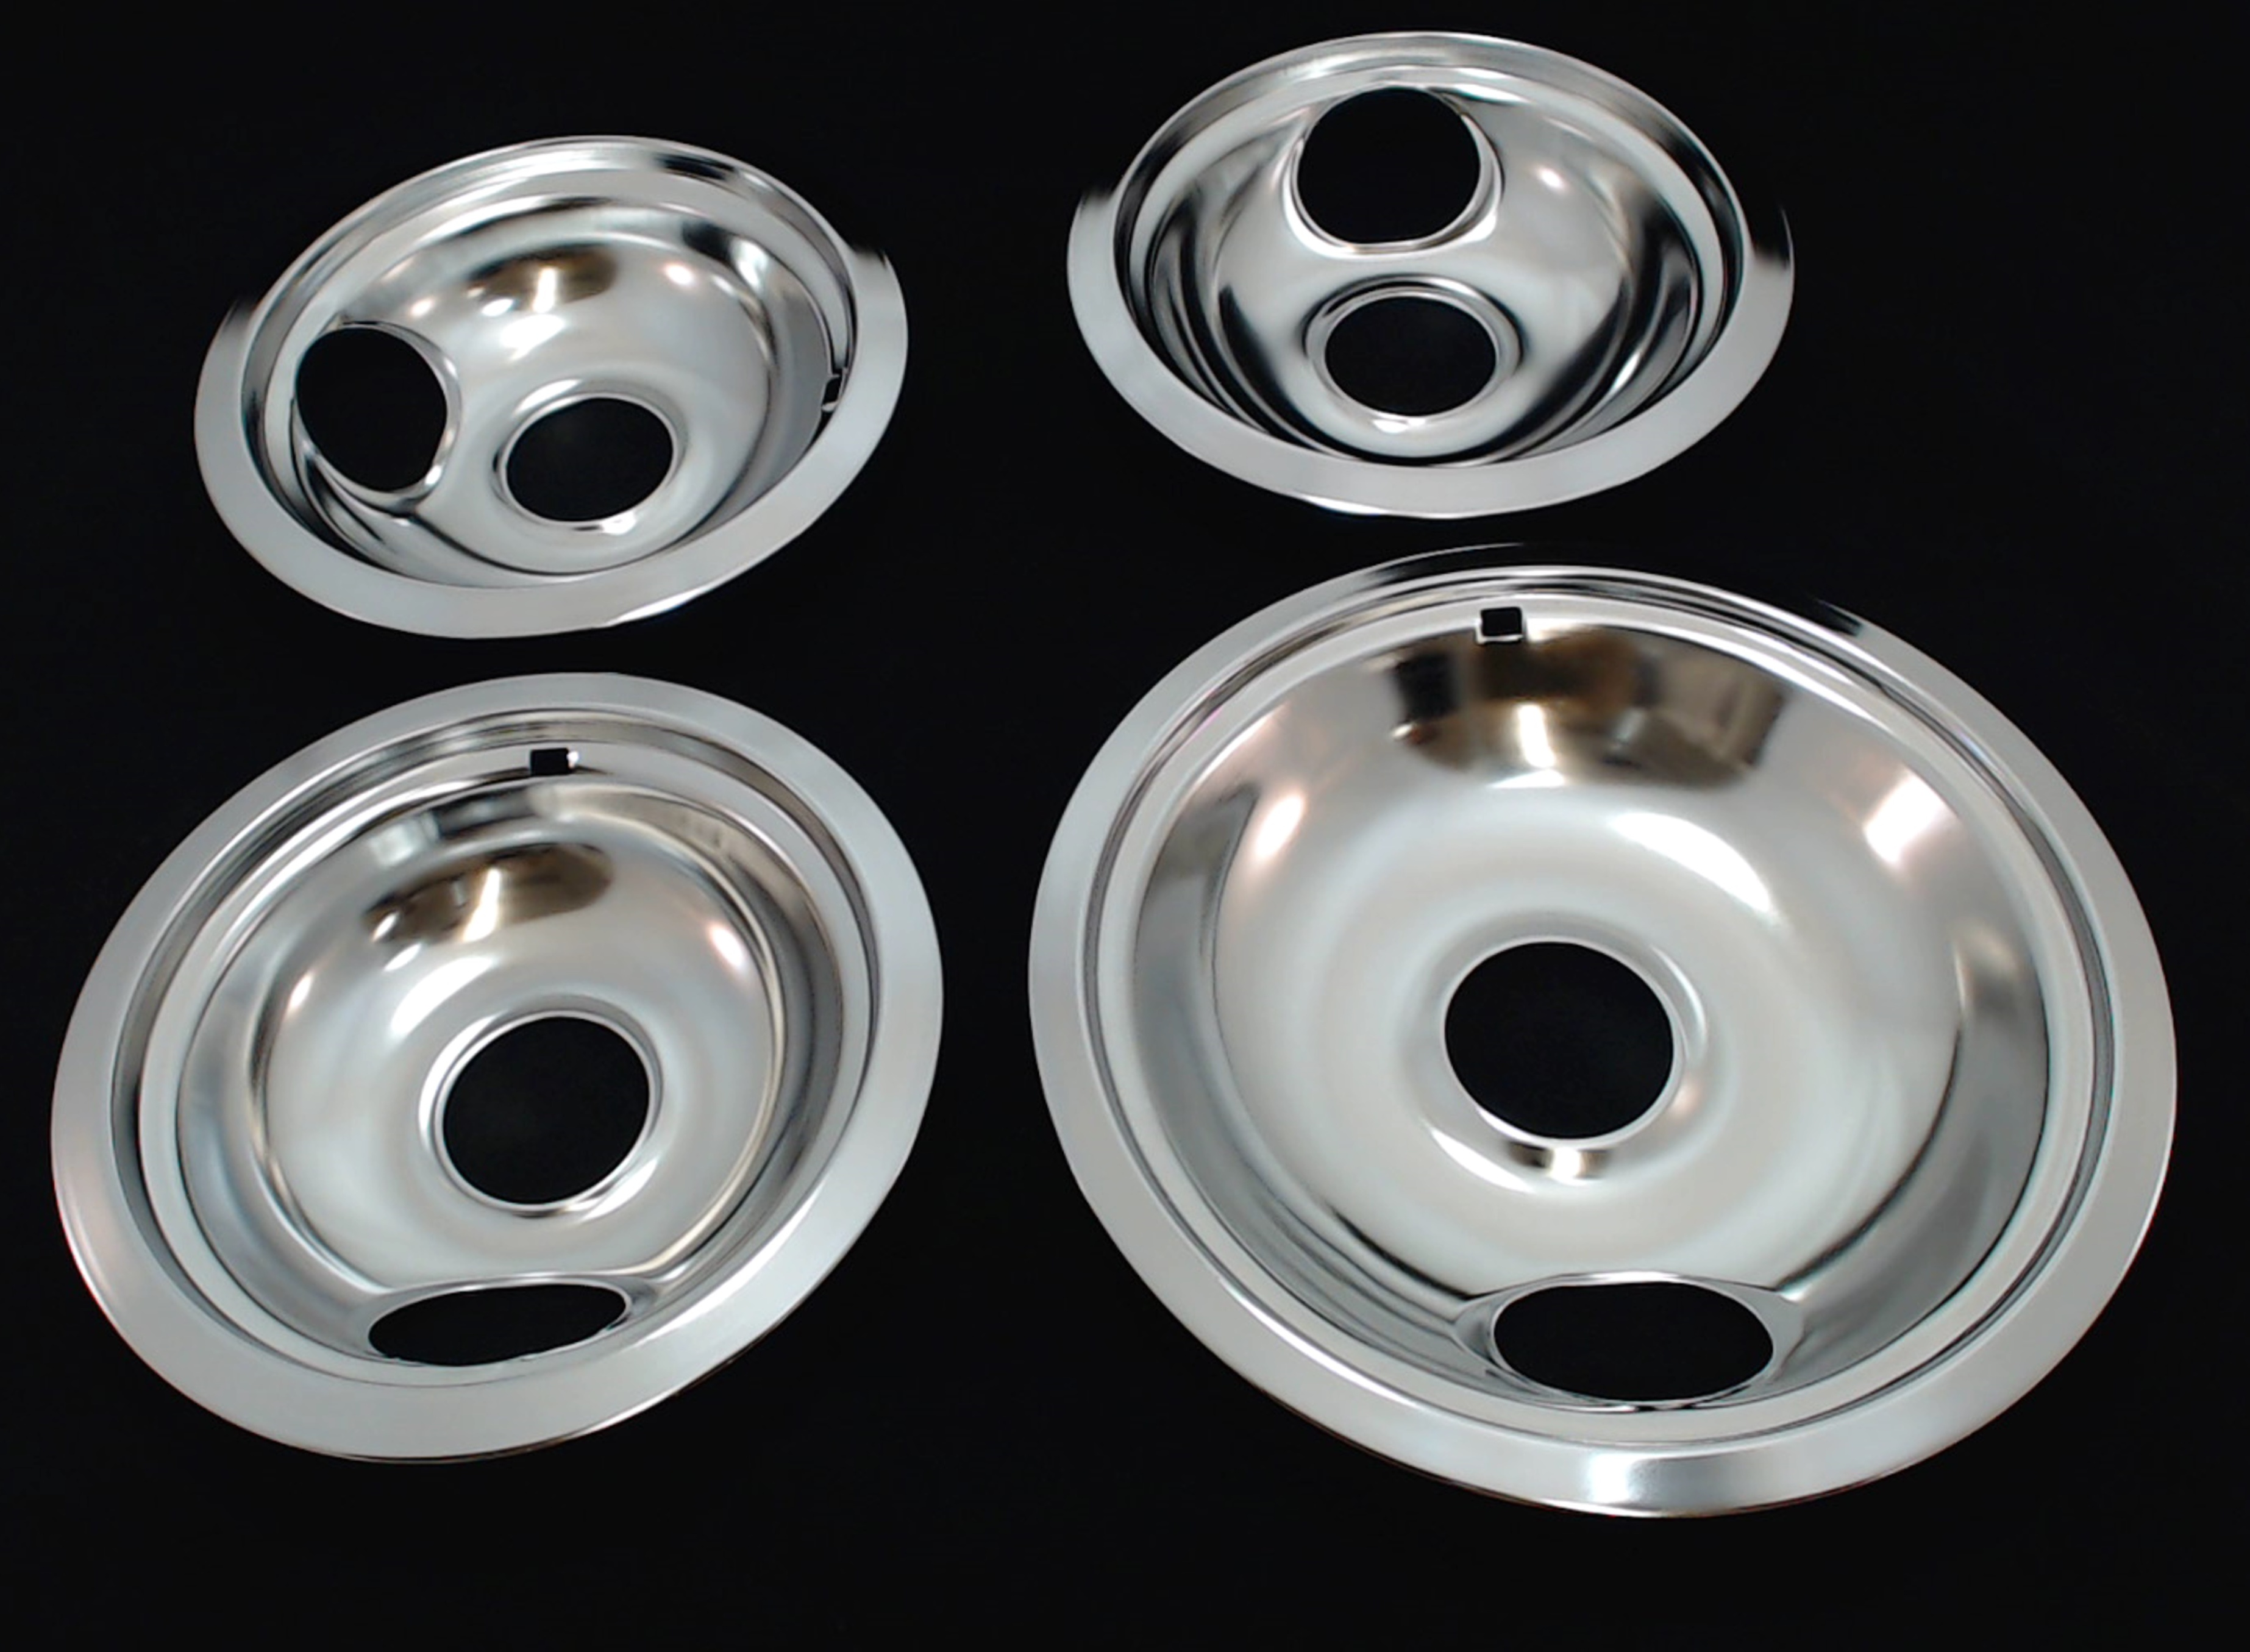 Sikawai Replacement Chrome Drip Pans for Whirlpool W10196405 and W10196406 include 1 Large 8 and 3 Small 6 Drip Bowl Pans